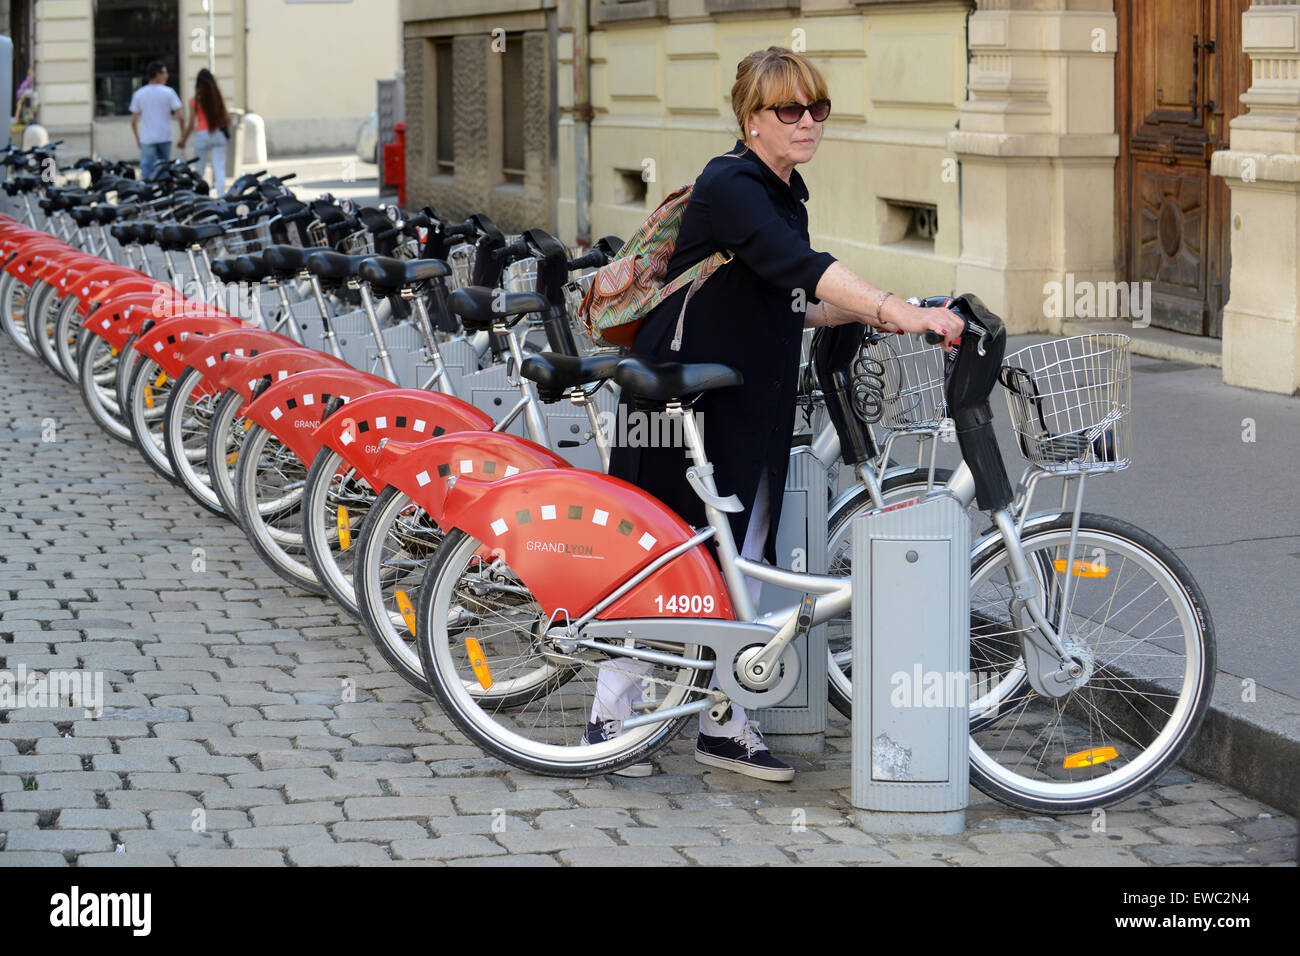 Bike hire woman hiring bicycle Lyon Burgundy France - Stock Image